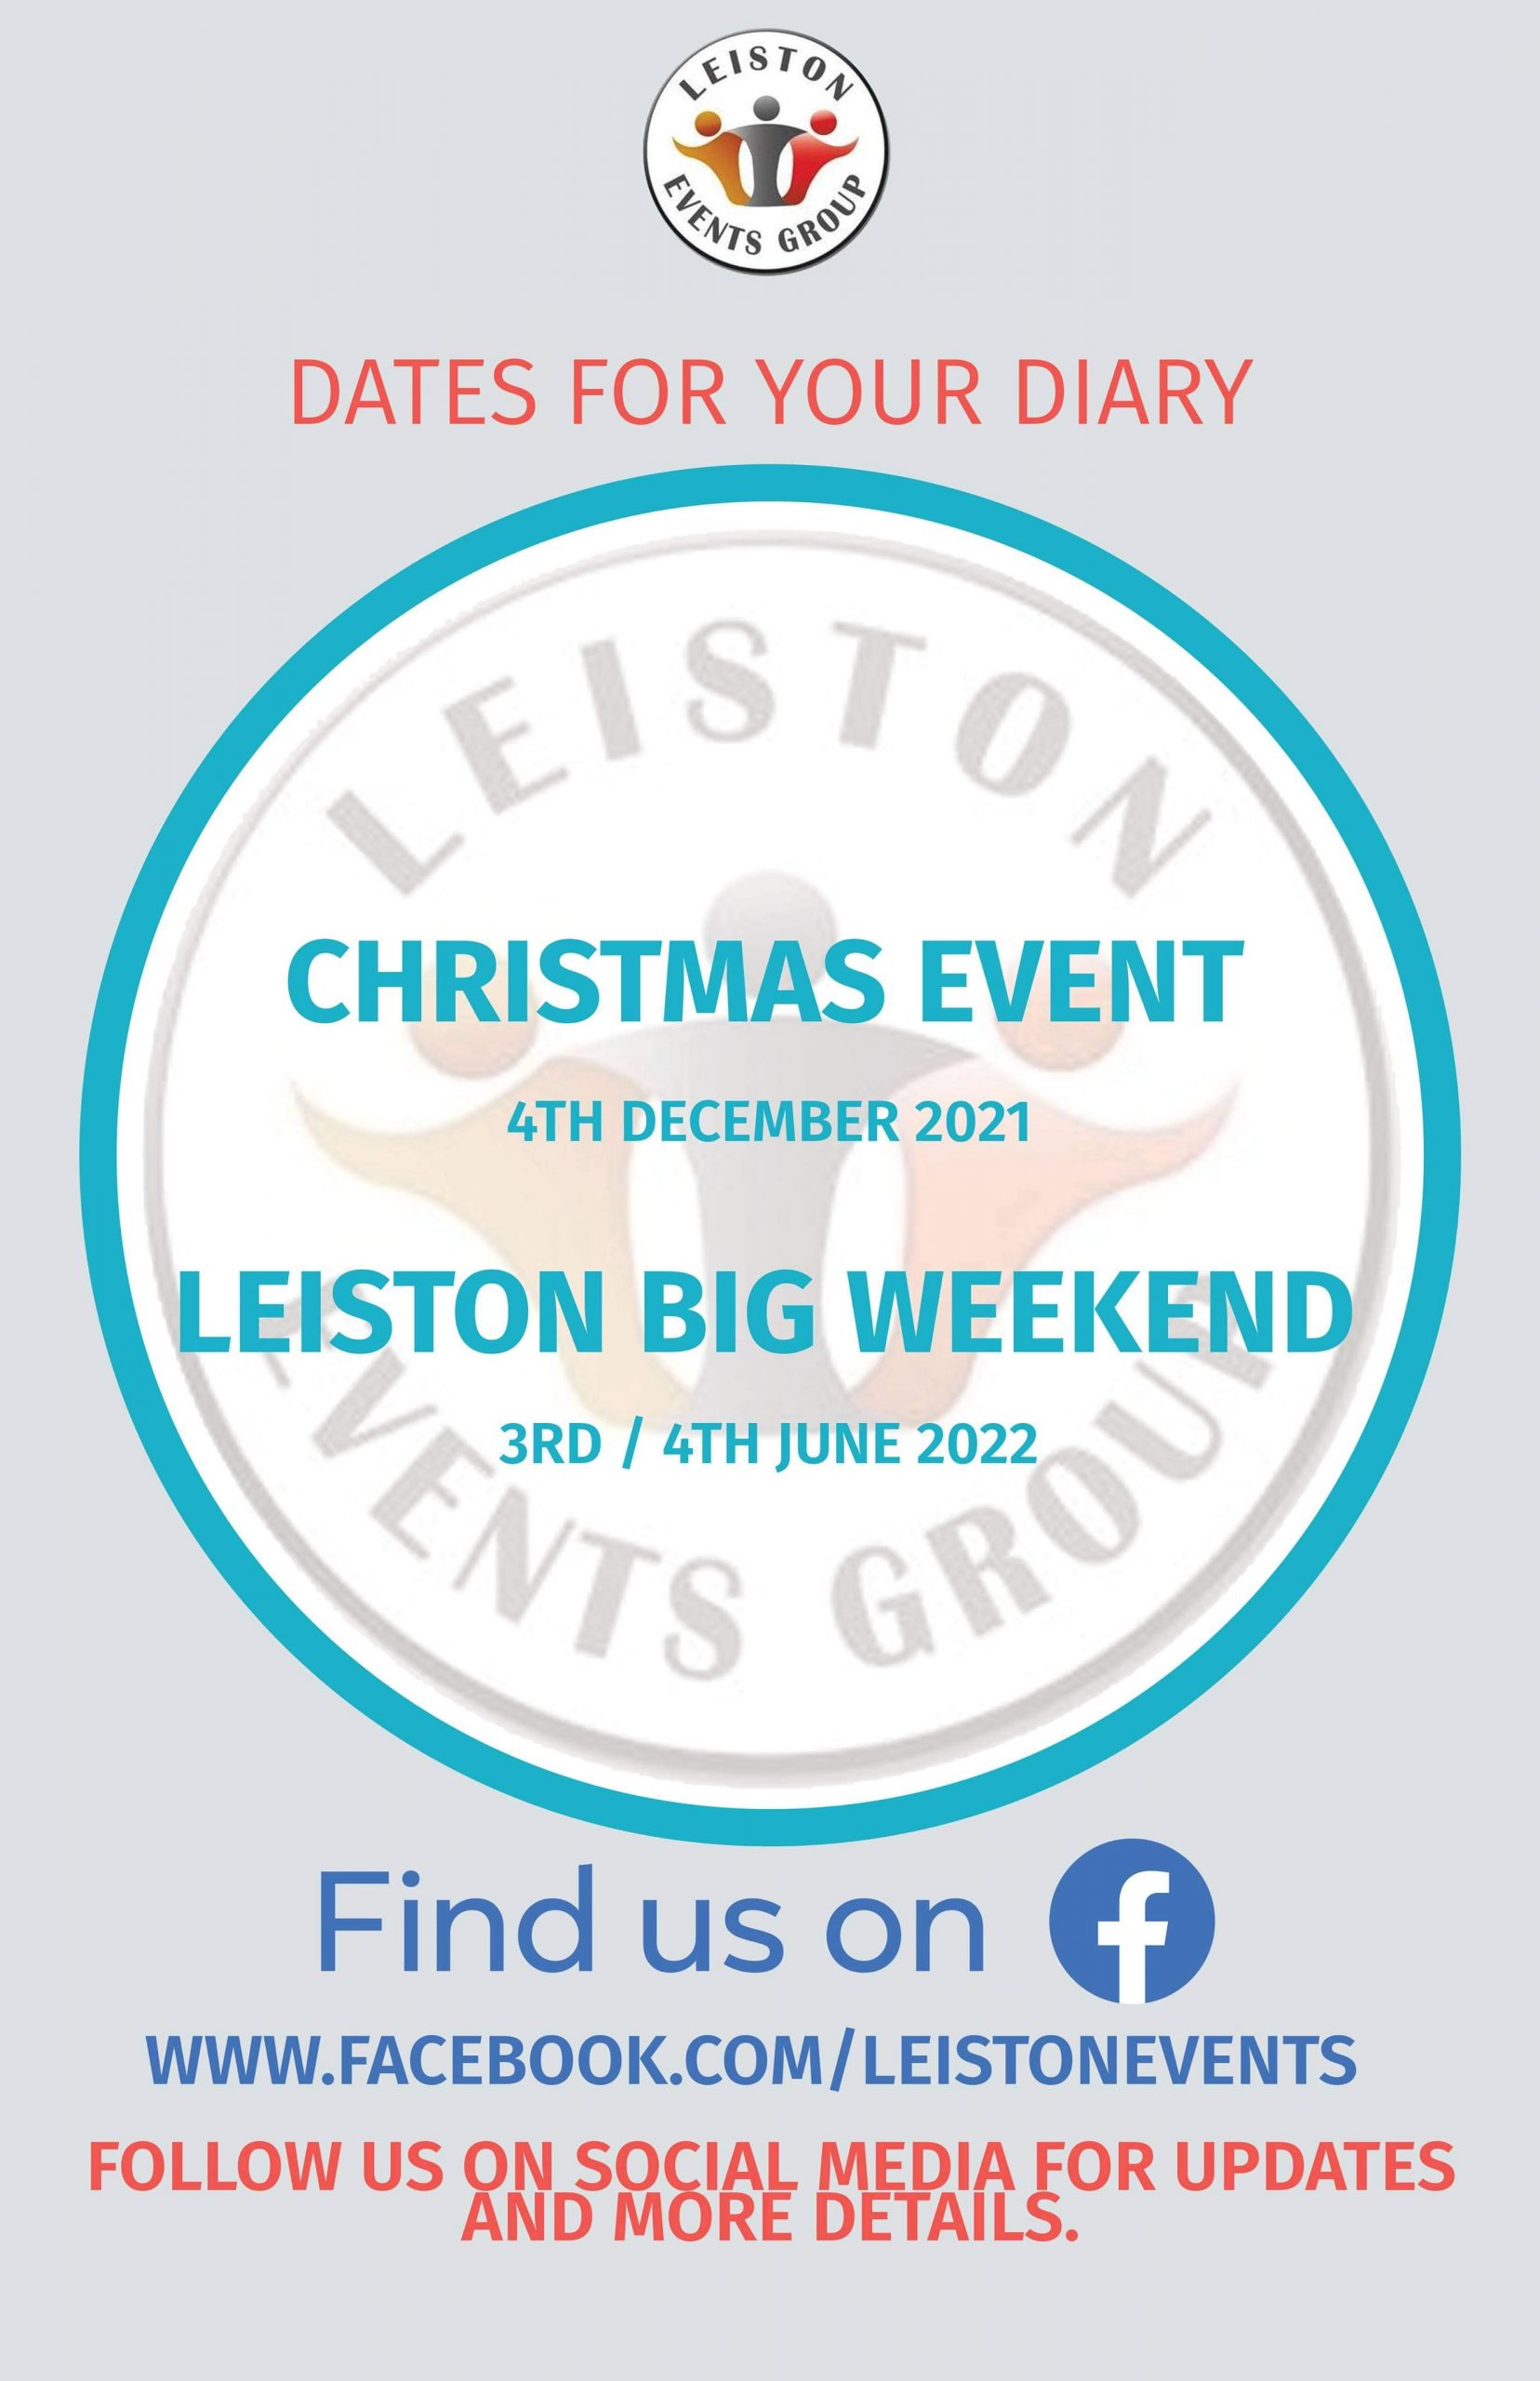 Leiston Events Christmas Event 4th December 2021 Leiston Big Weekend 3rd-4th June 2022